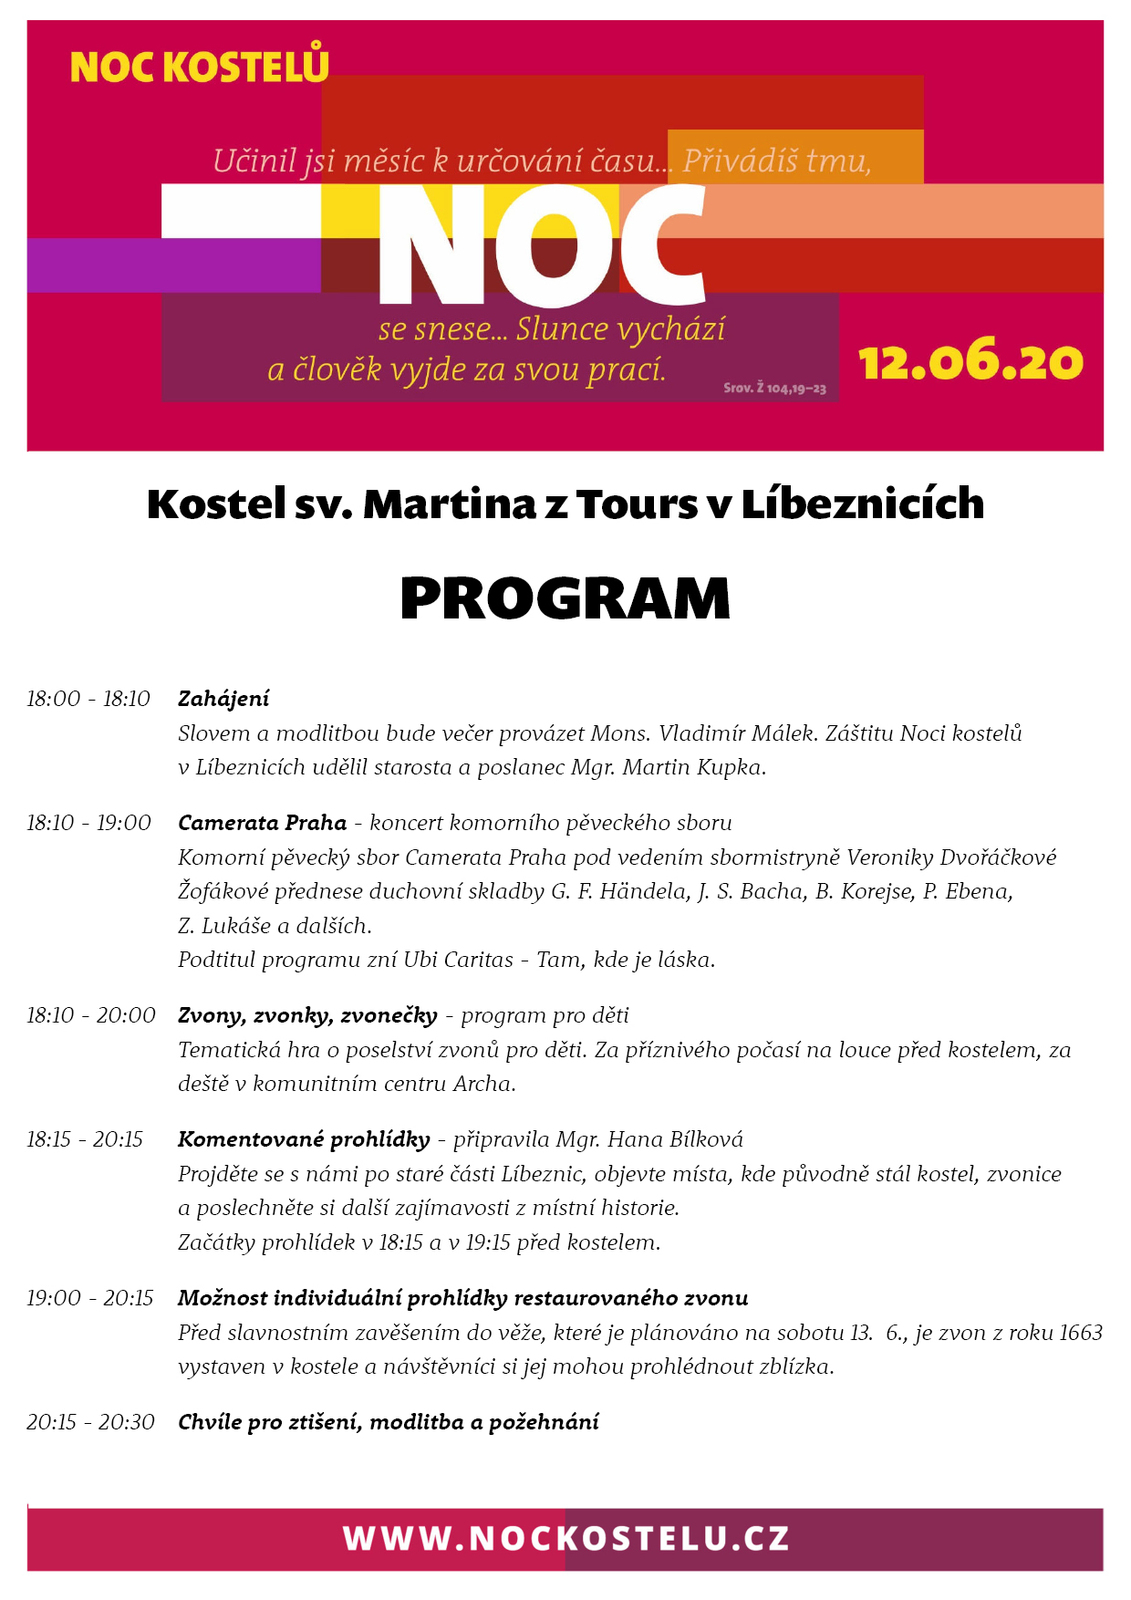 Noc Kostelu 2020_A4_Program.jpg